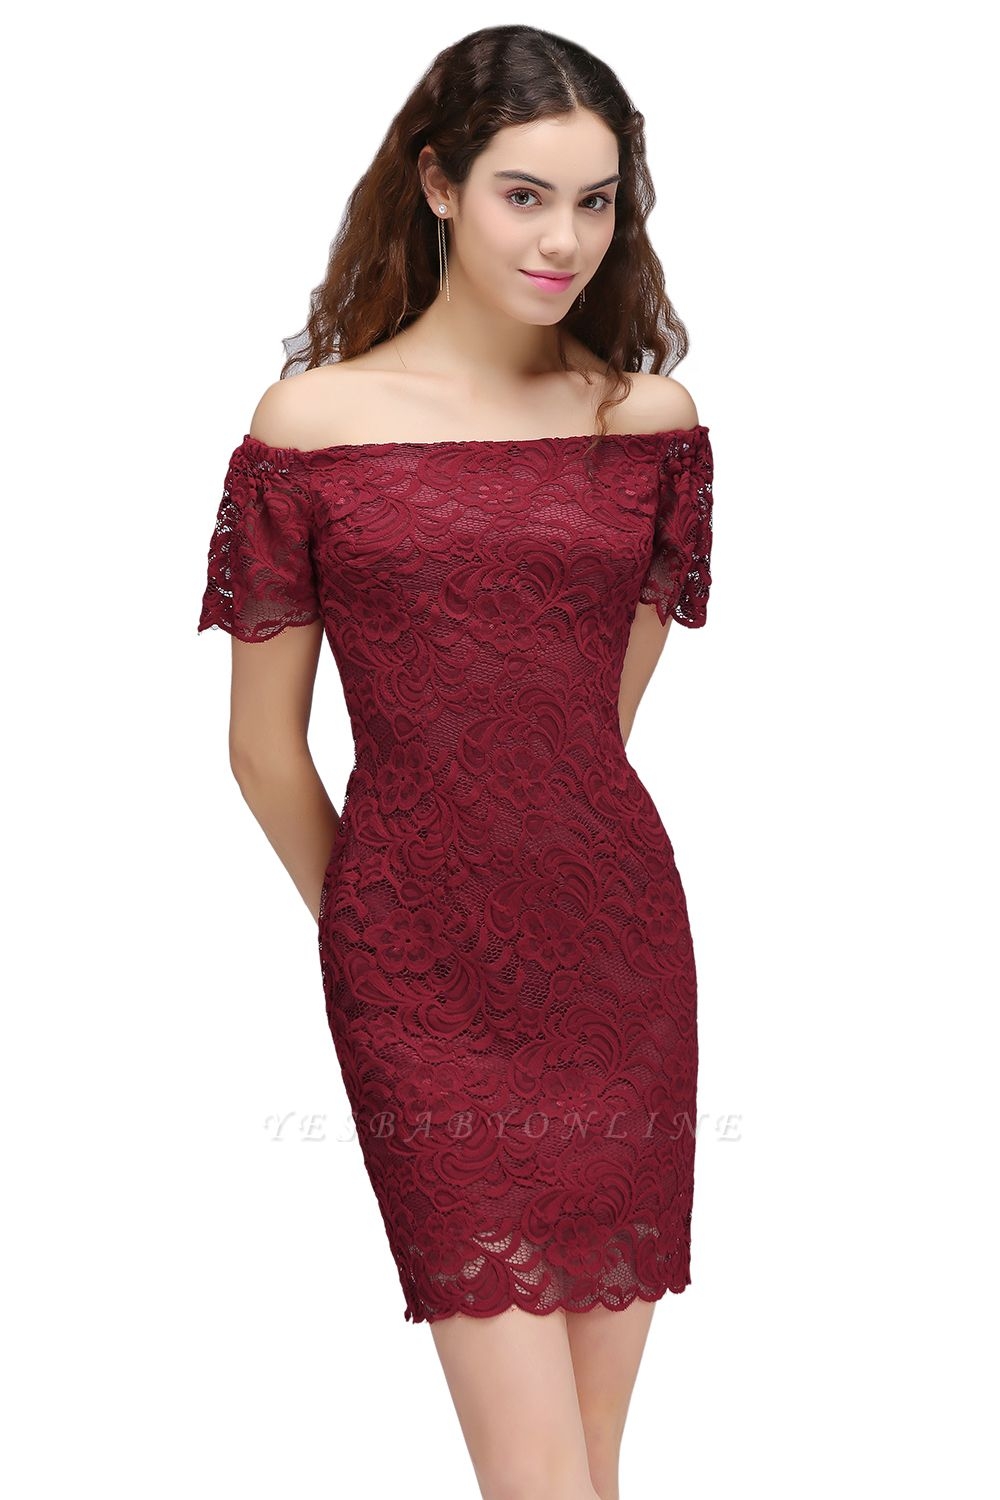 Cheap Burgundy Lace Sheath Homecoming Dress Short Sleeves Cocktail Dress in Stock